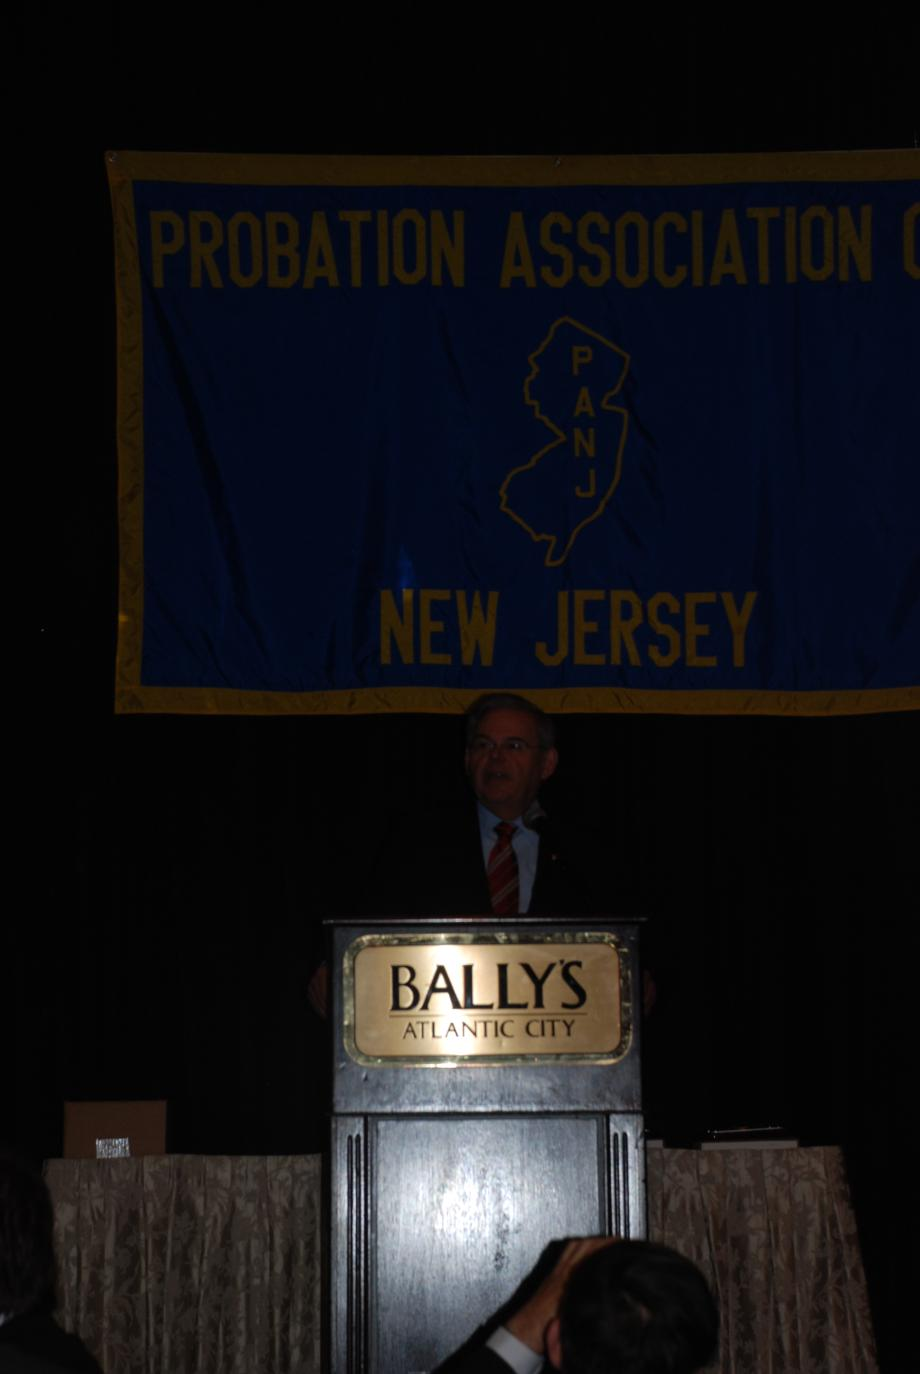 Speaking at the Probation Assocation of New Jersey's 68th Annual Training Conference